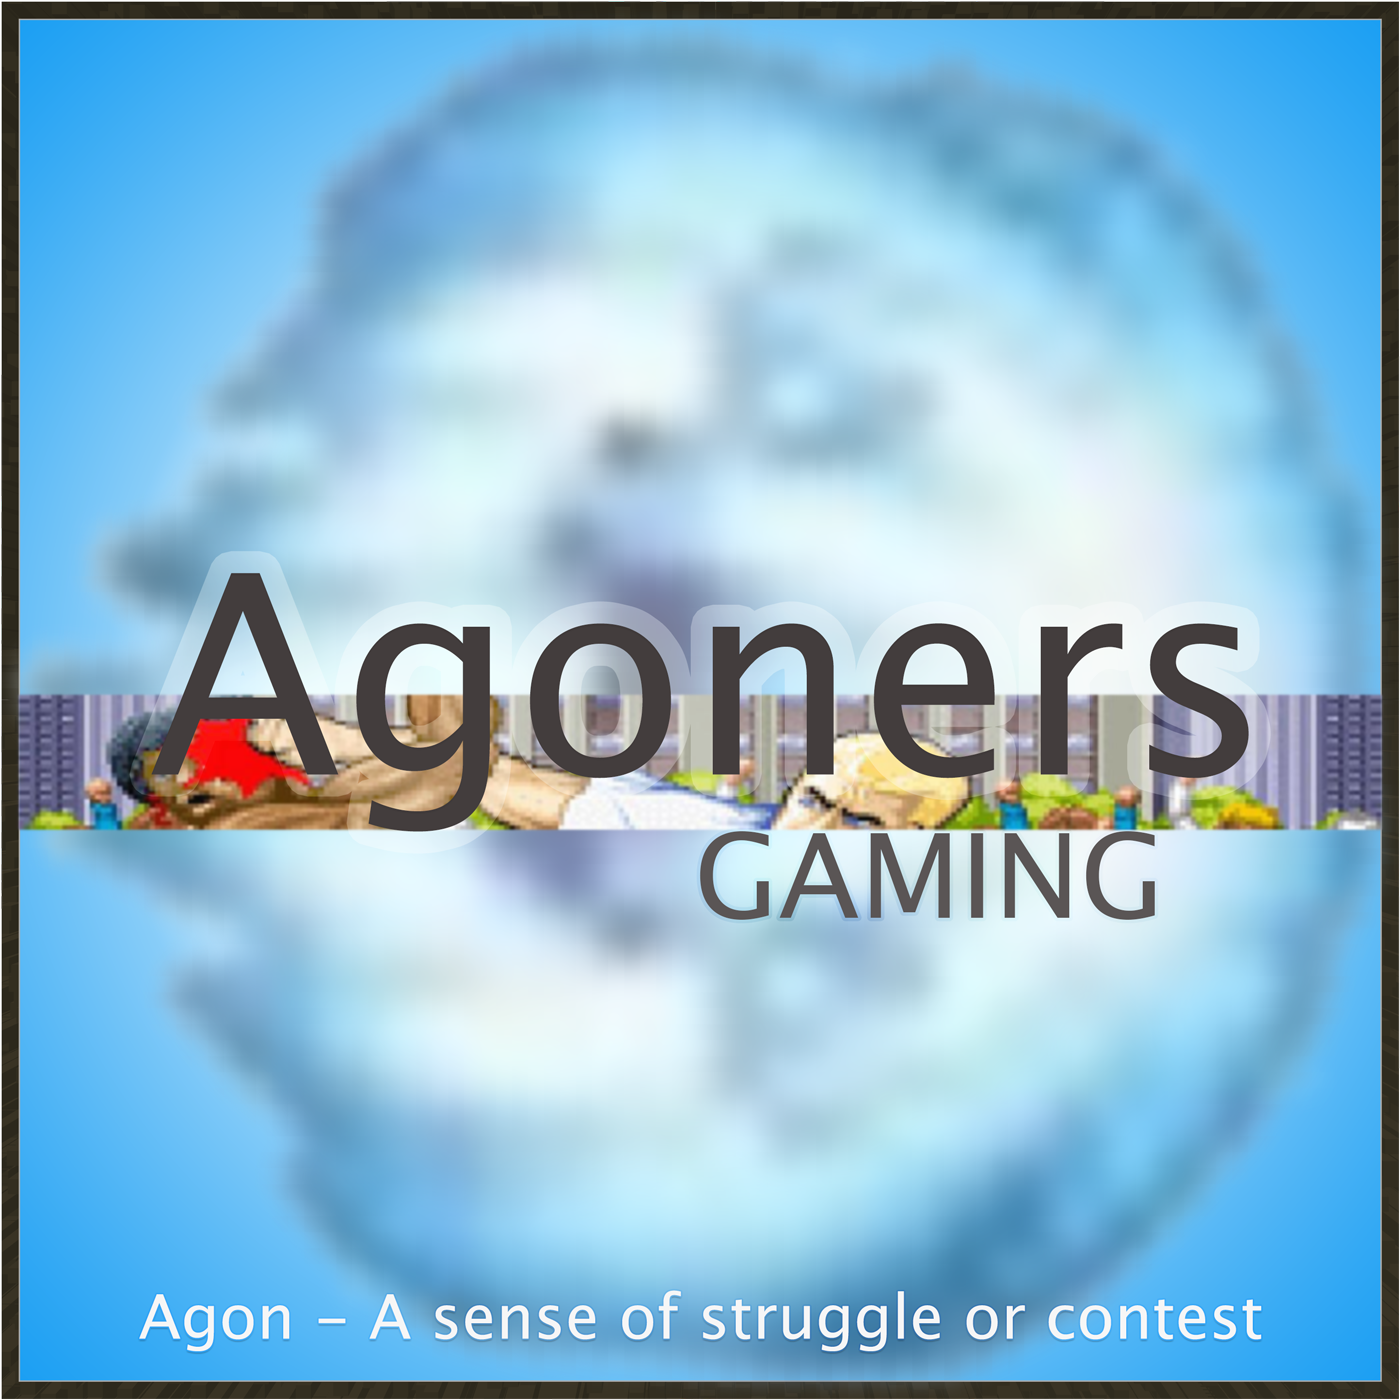 Agoners Gaming